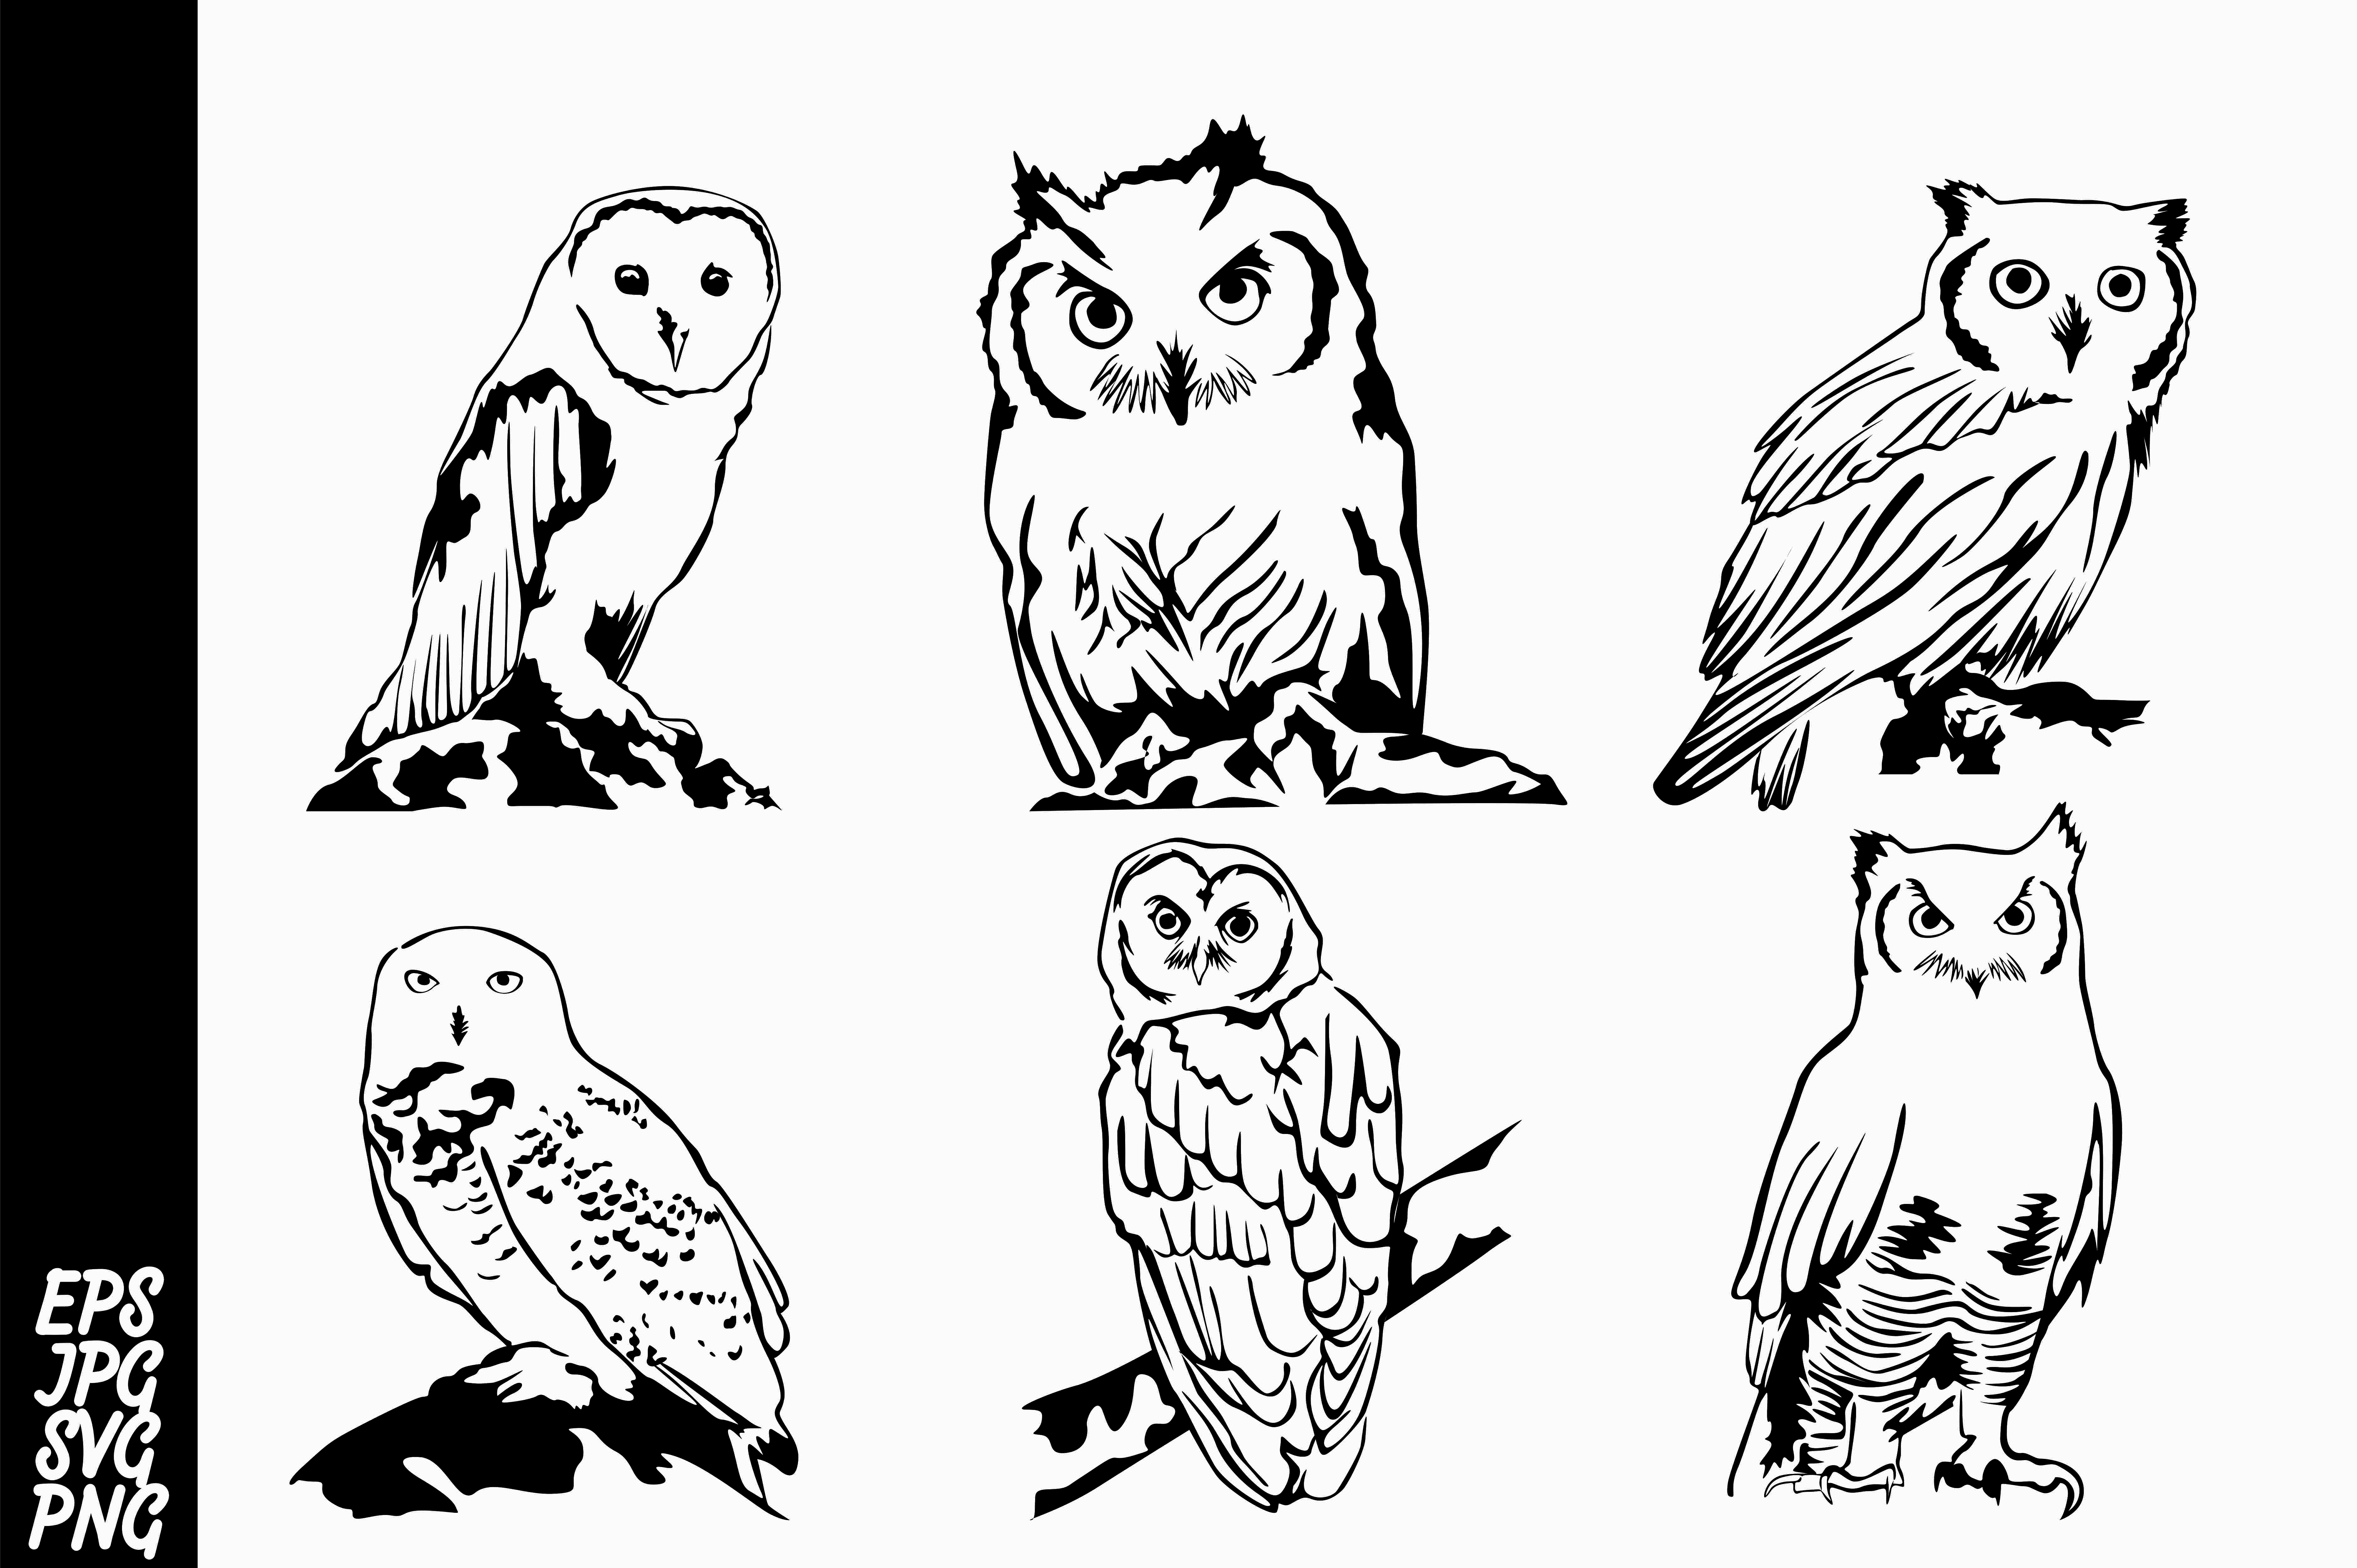 Download Free Line Art Owl Bundle Graphic By Arief Sapta Adjie Creative Fabrica for Cricut Explore, Silhouette and other cutting machines.